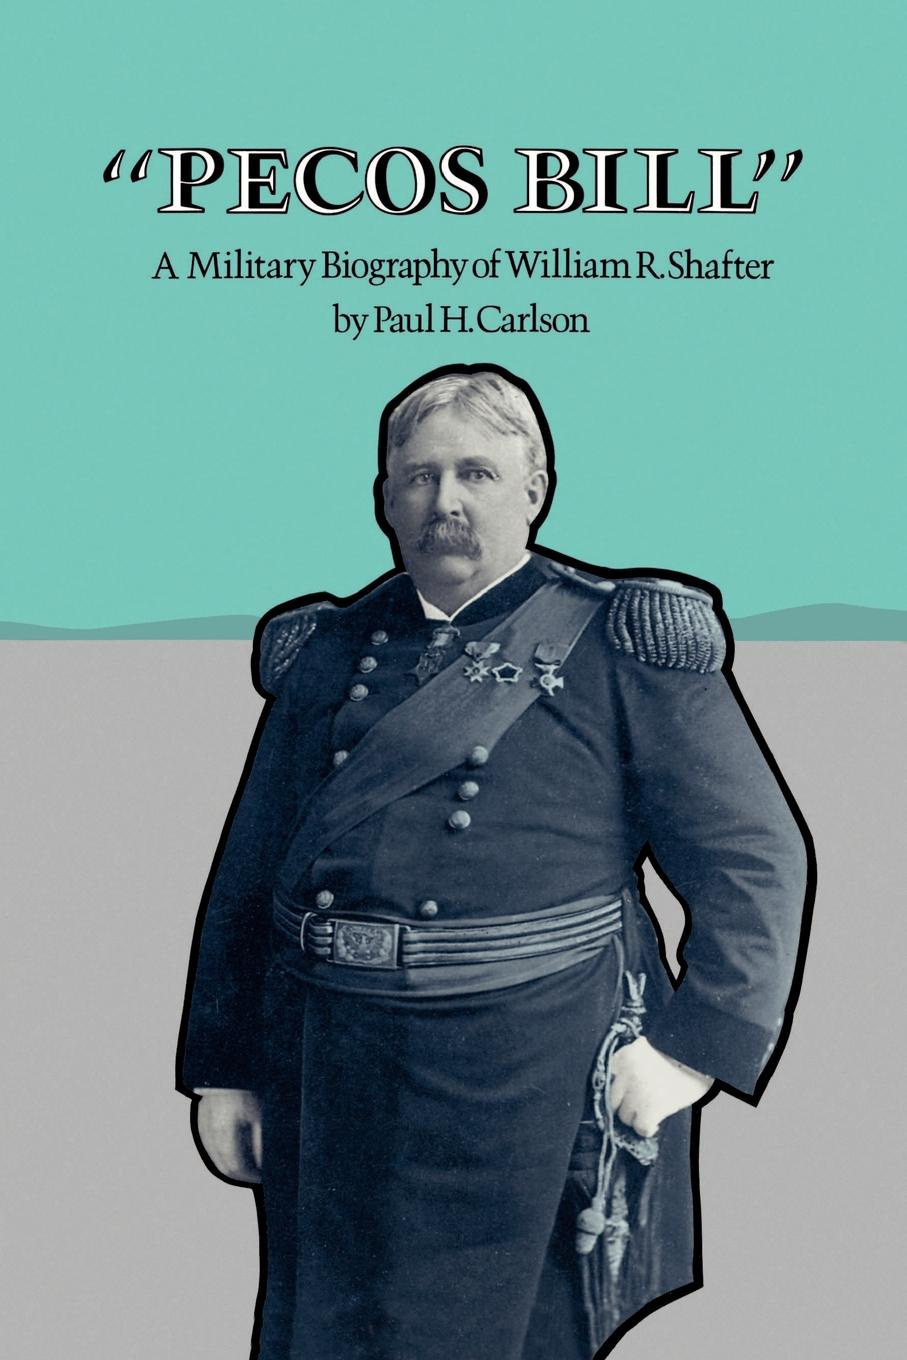 Paul H. Carlson Pecos Bill. A Military Biography of William R. Shafter